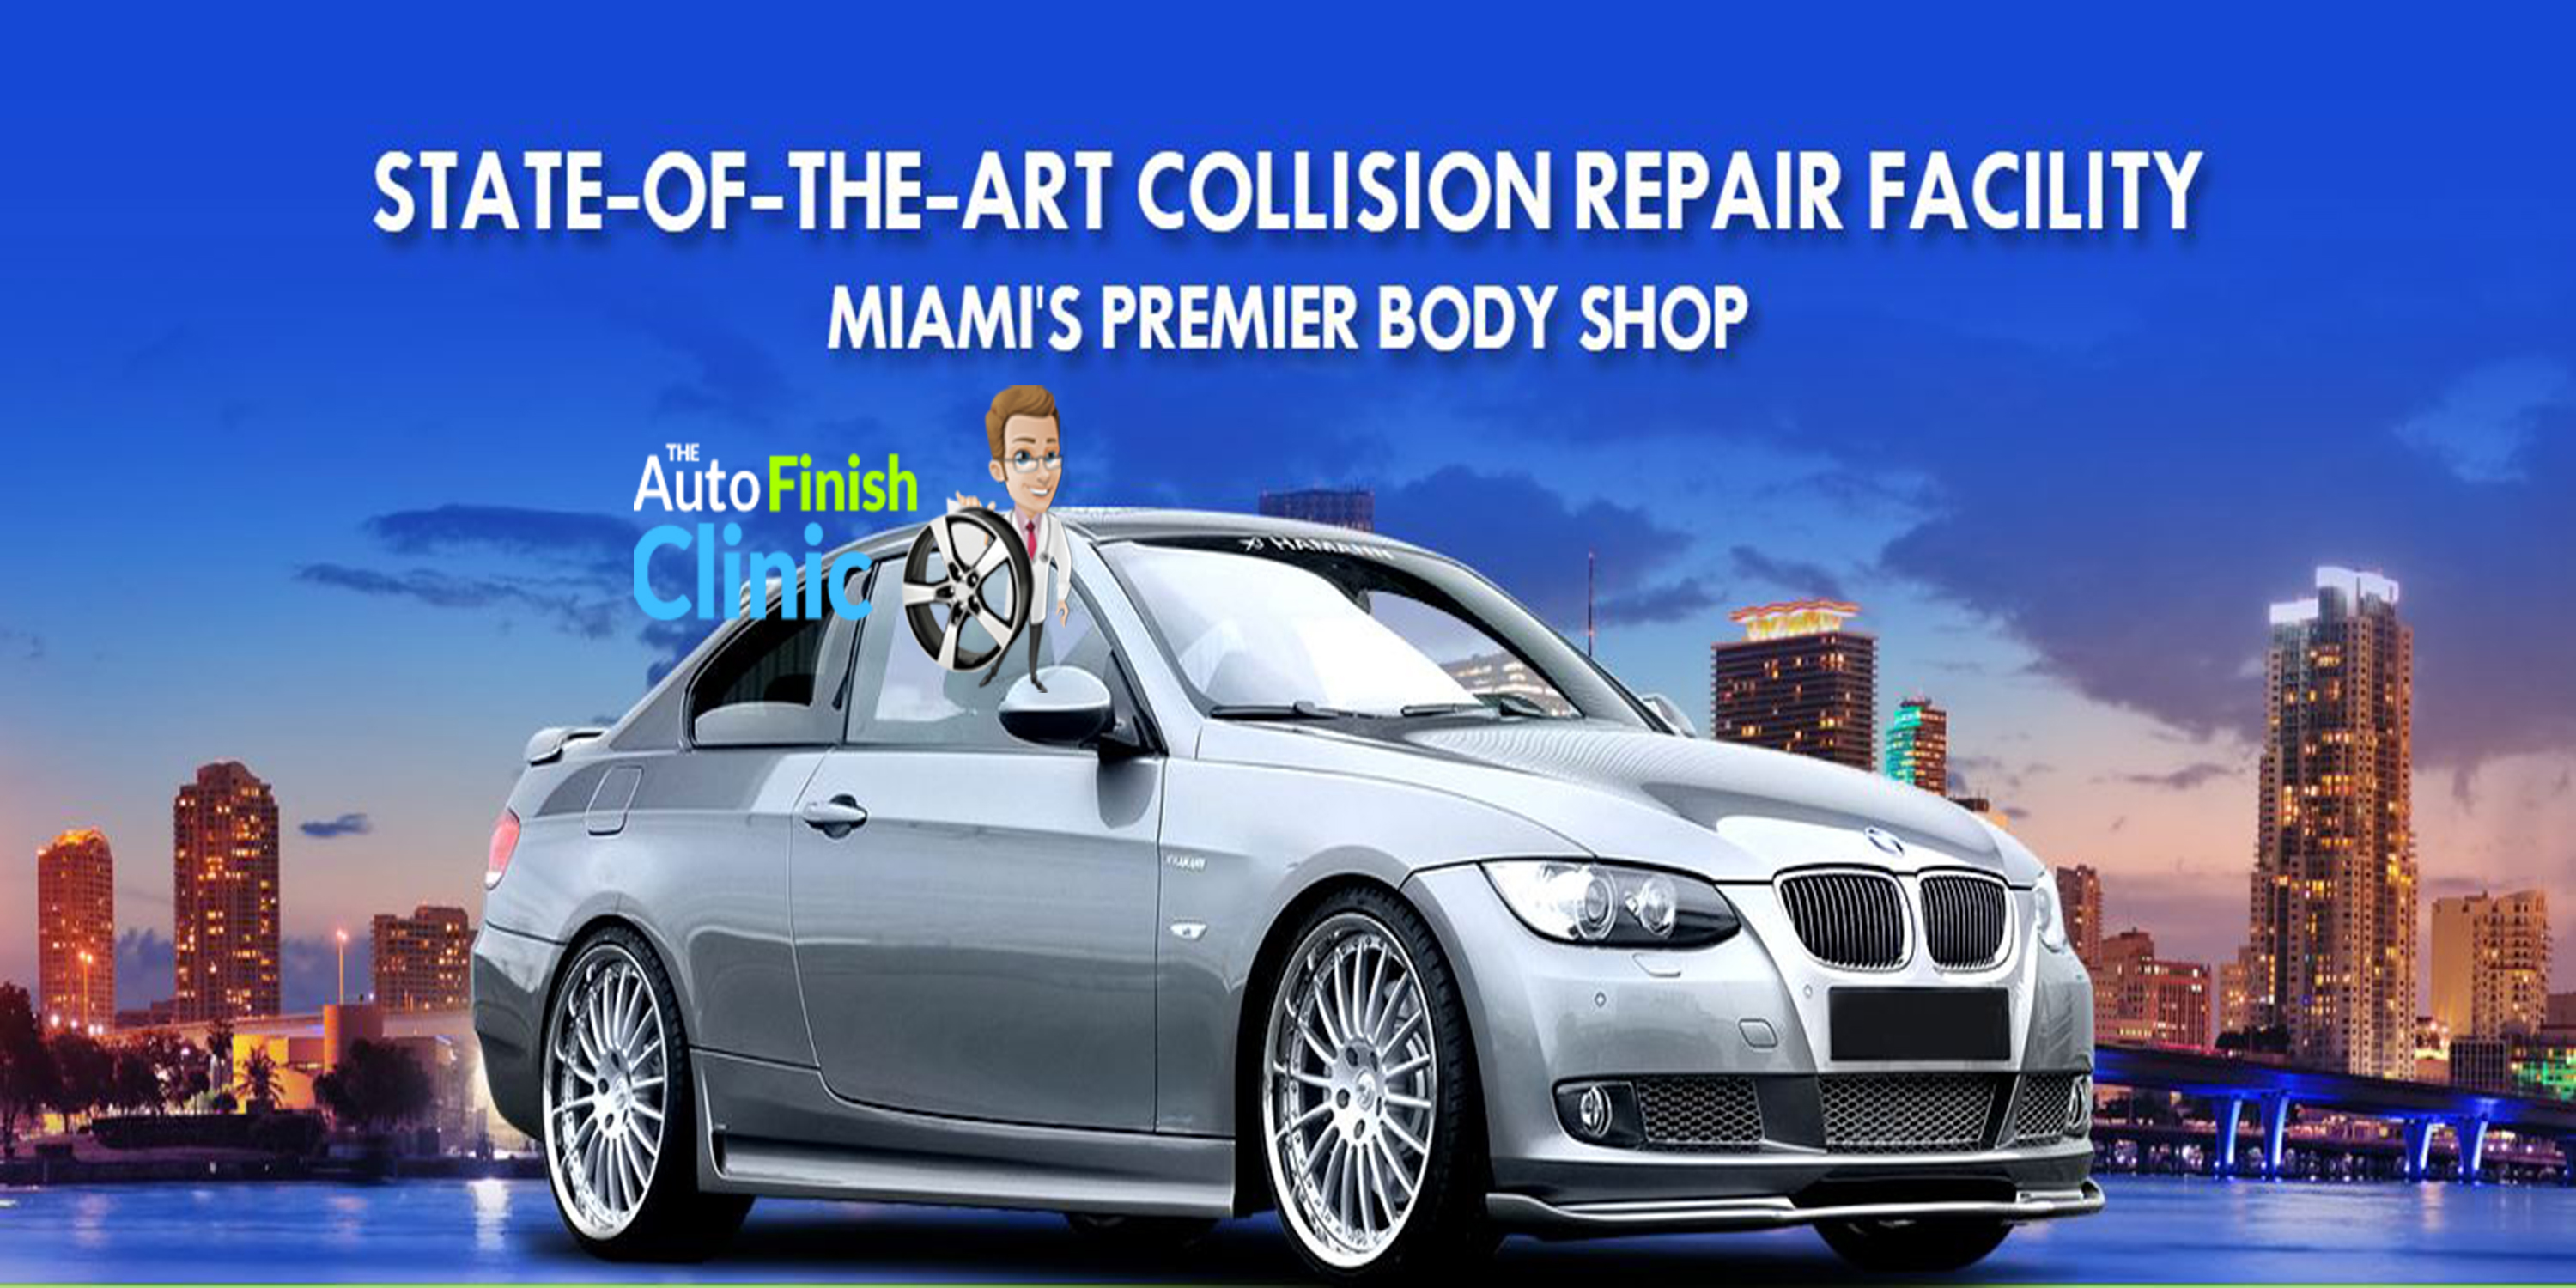 The Auto Finish Clinic